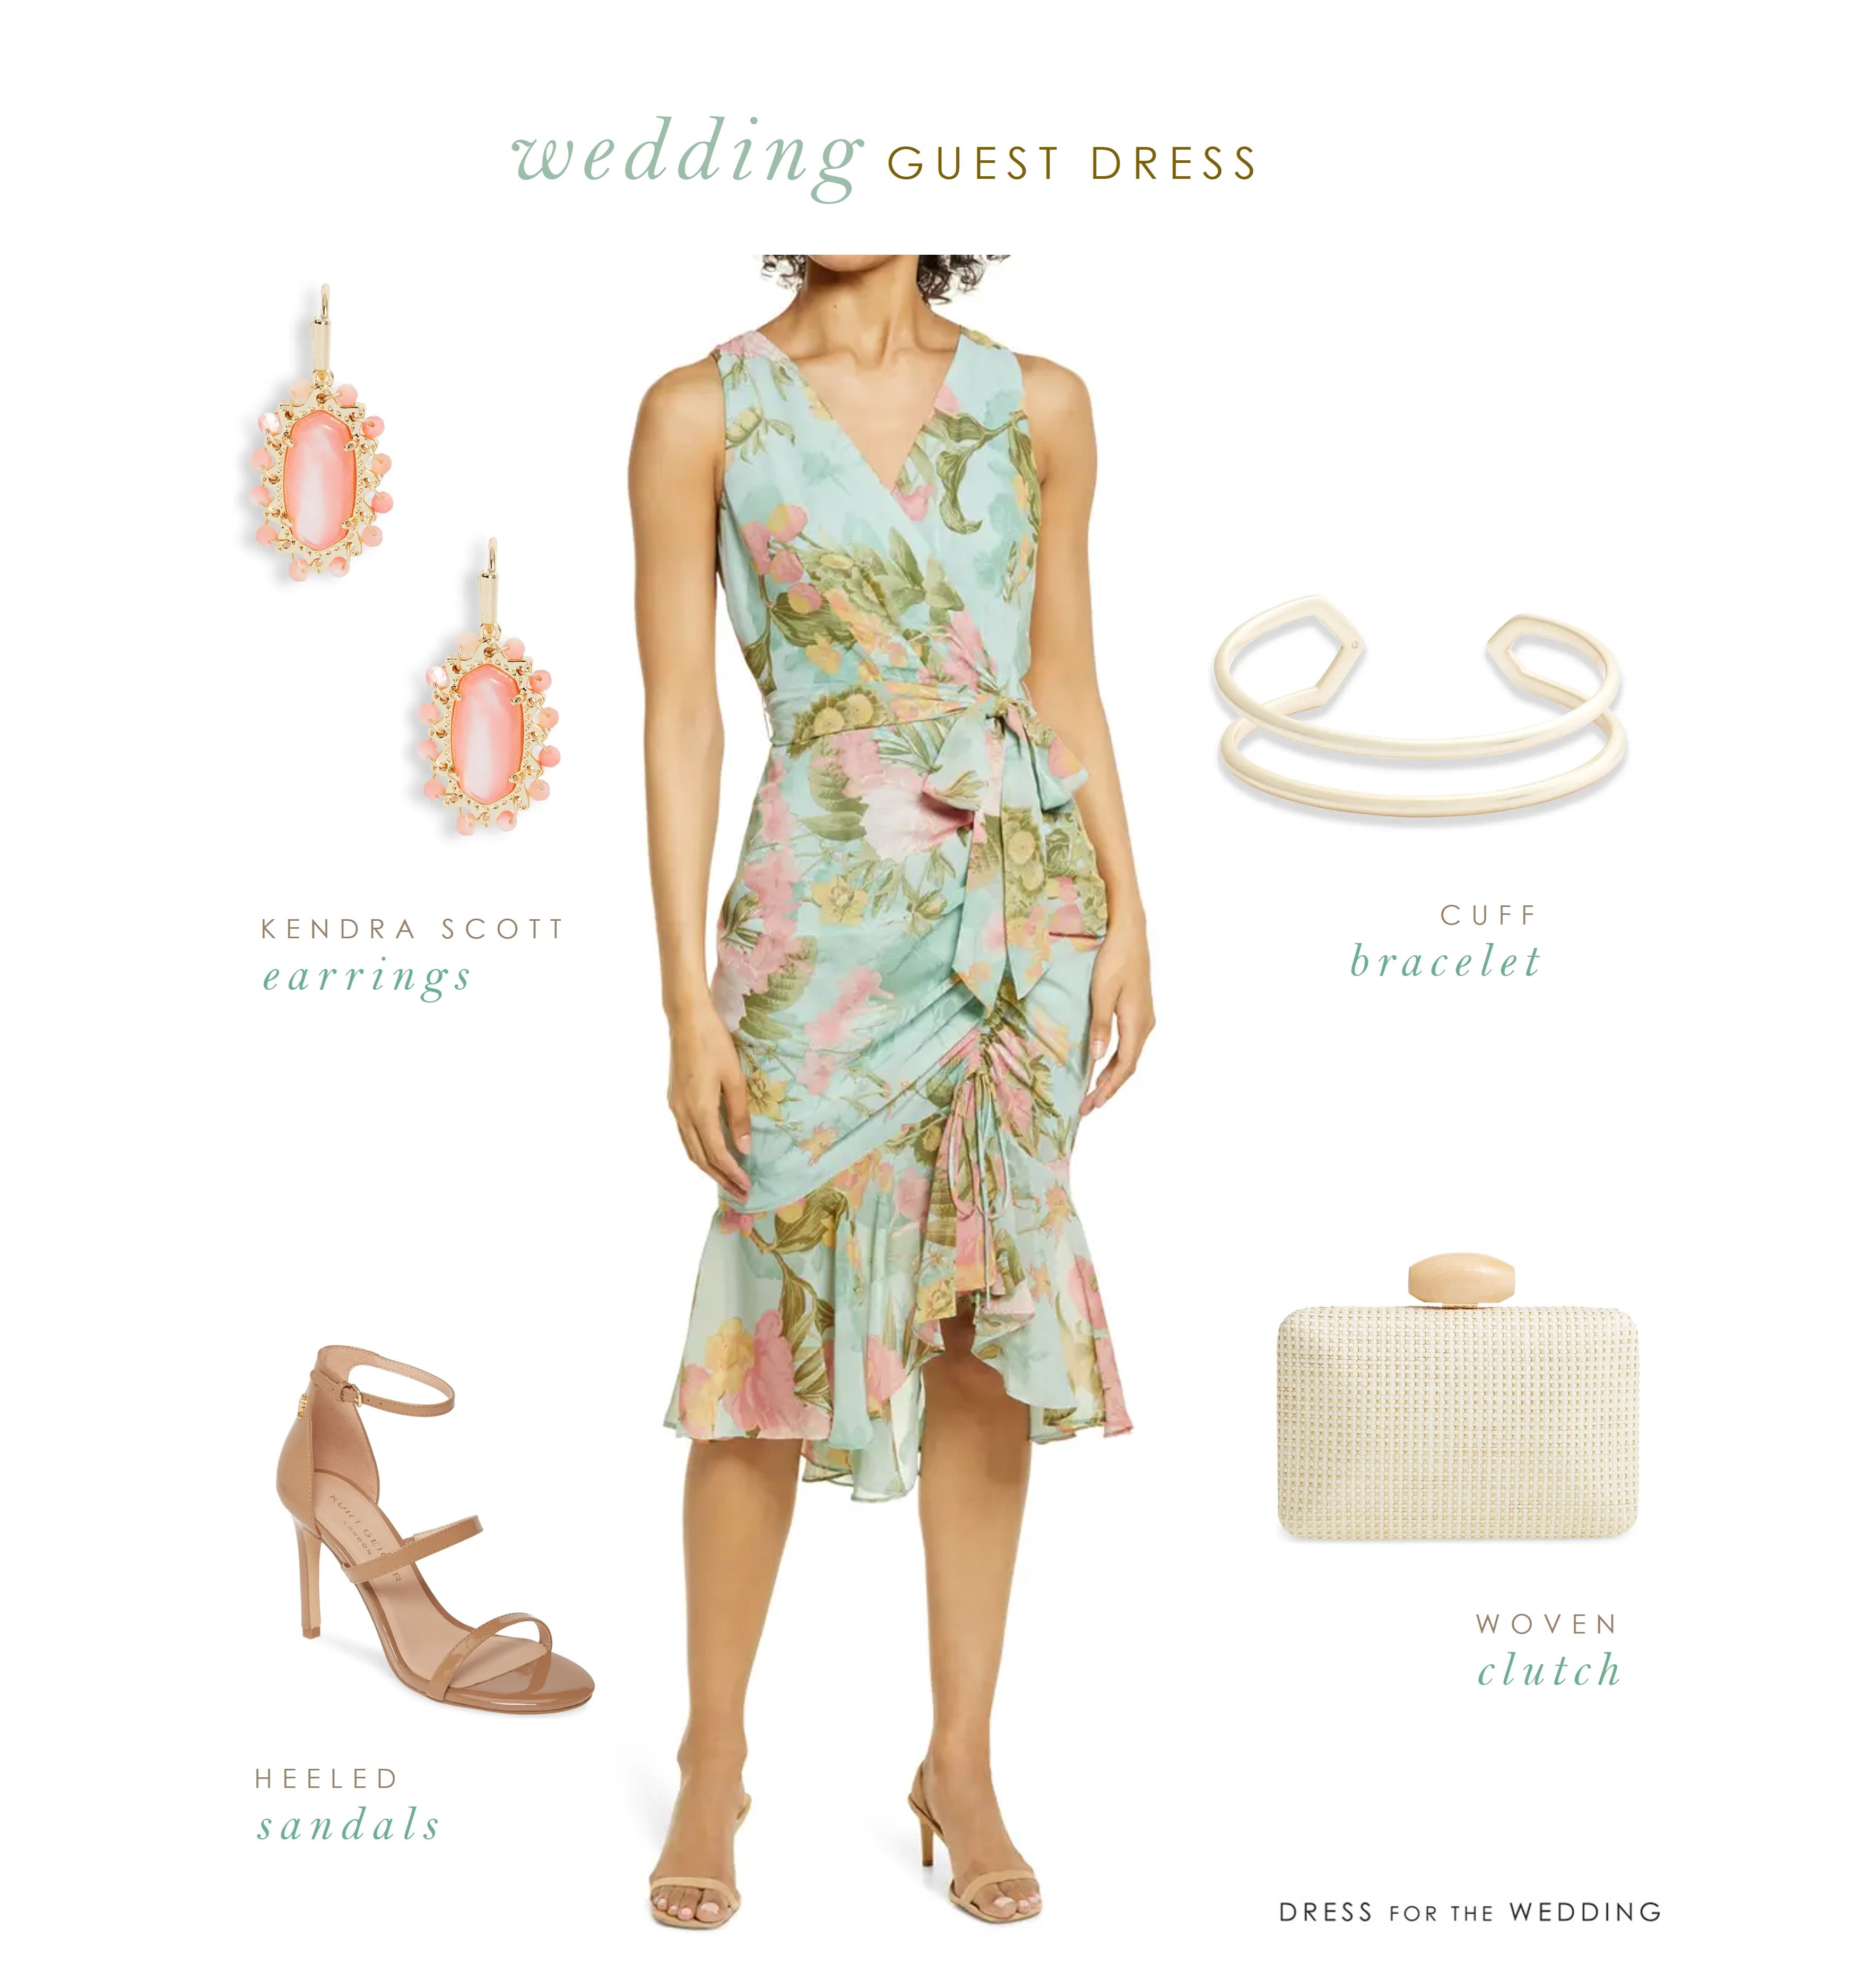 A collage of a wedding guest outfit with agreen dress, earrings, bracelet, shoes and clutch